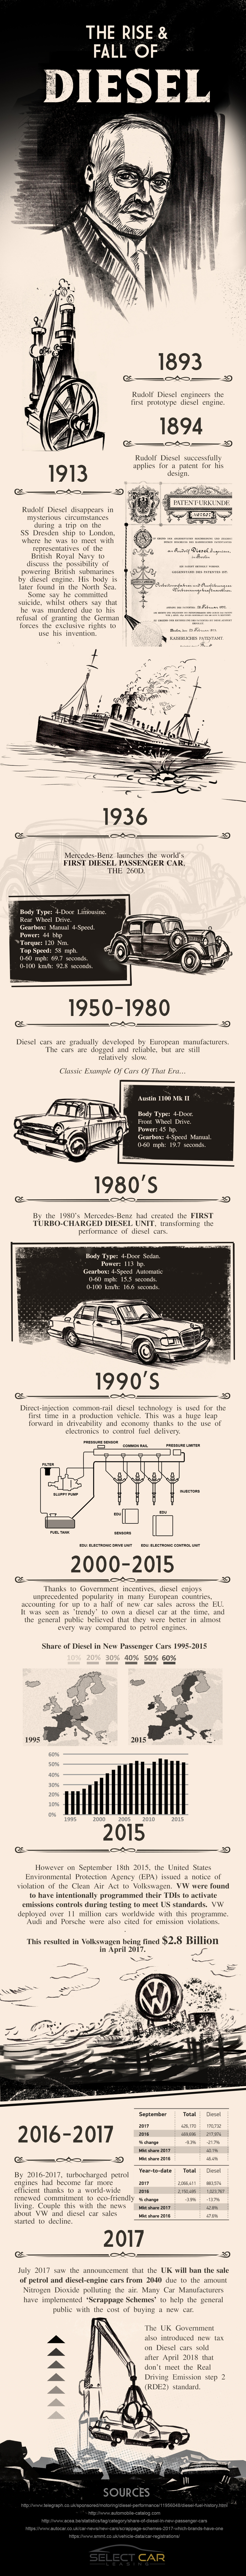 From Birth to Extinction? Diesel's Changing Fortune - Infographic